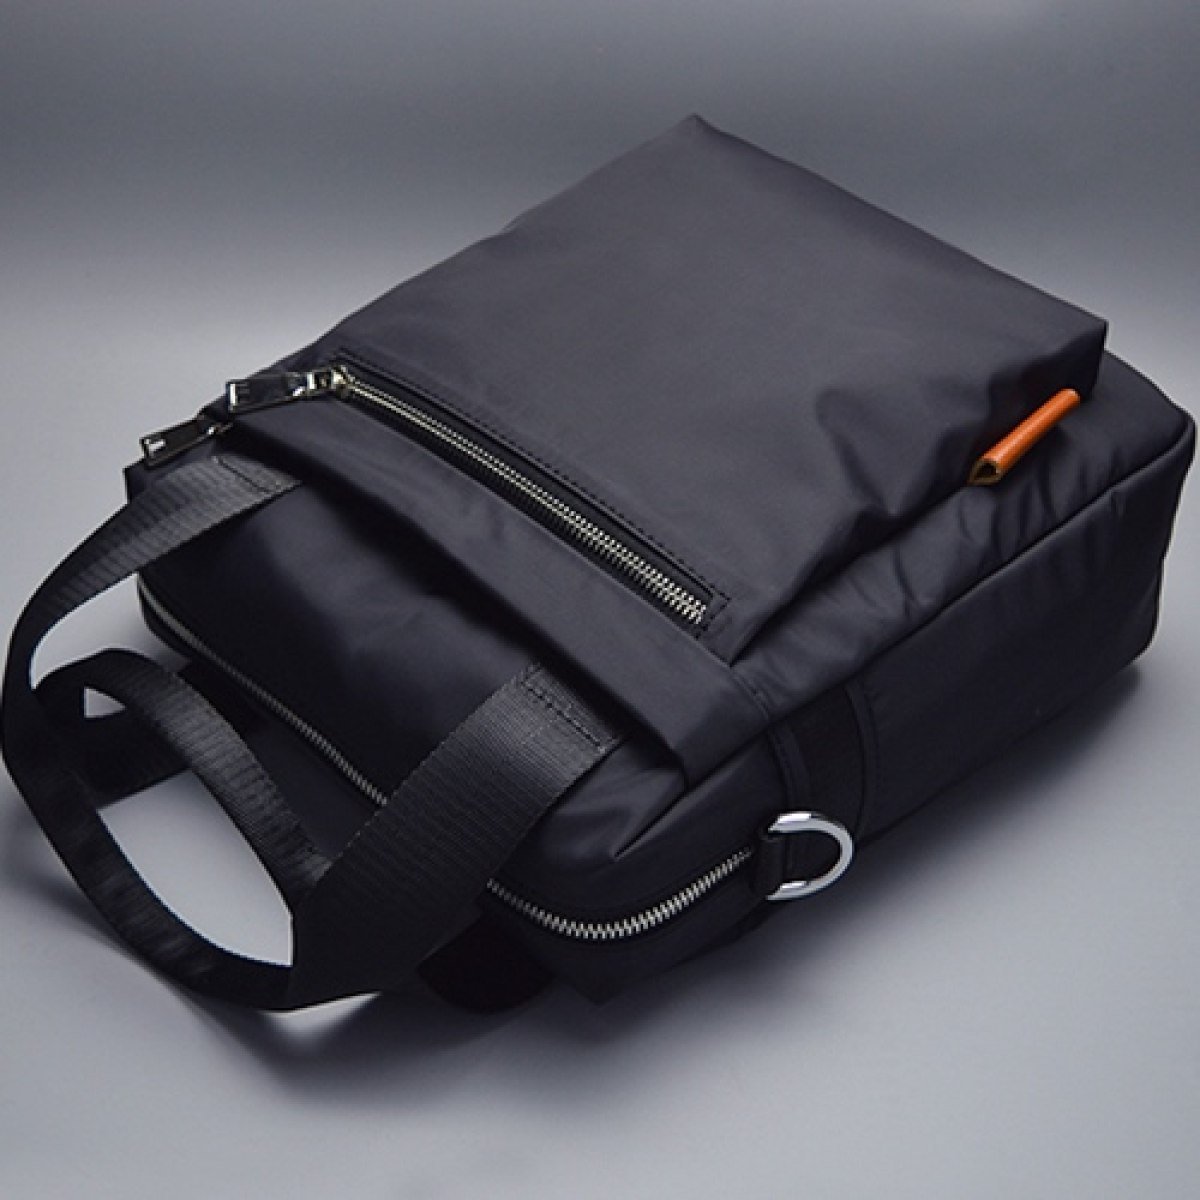 SJLN Men 8 Inch Waterproof Notebook Computer Bag Portable Shoulder Diagonal Package Briefcase Oxford Spinning Simple Retro Business English Bag,Black-OneSize by SJLN (Image #2)